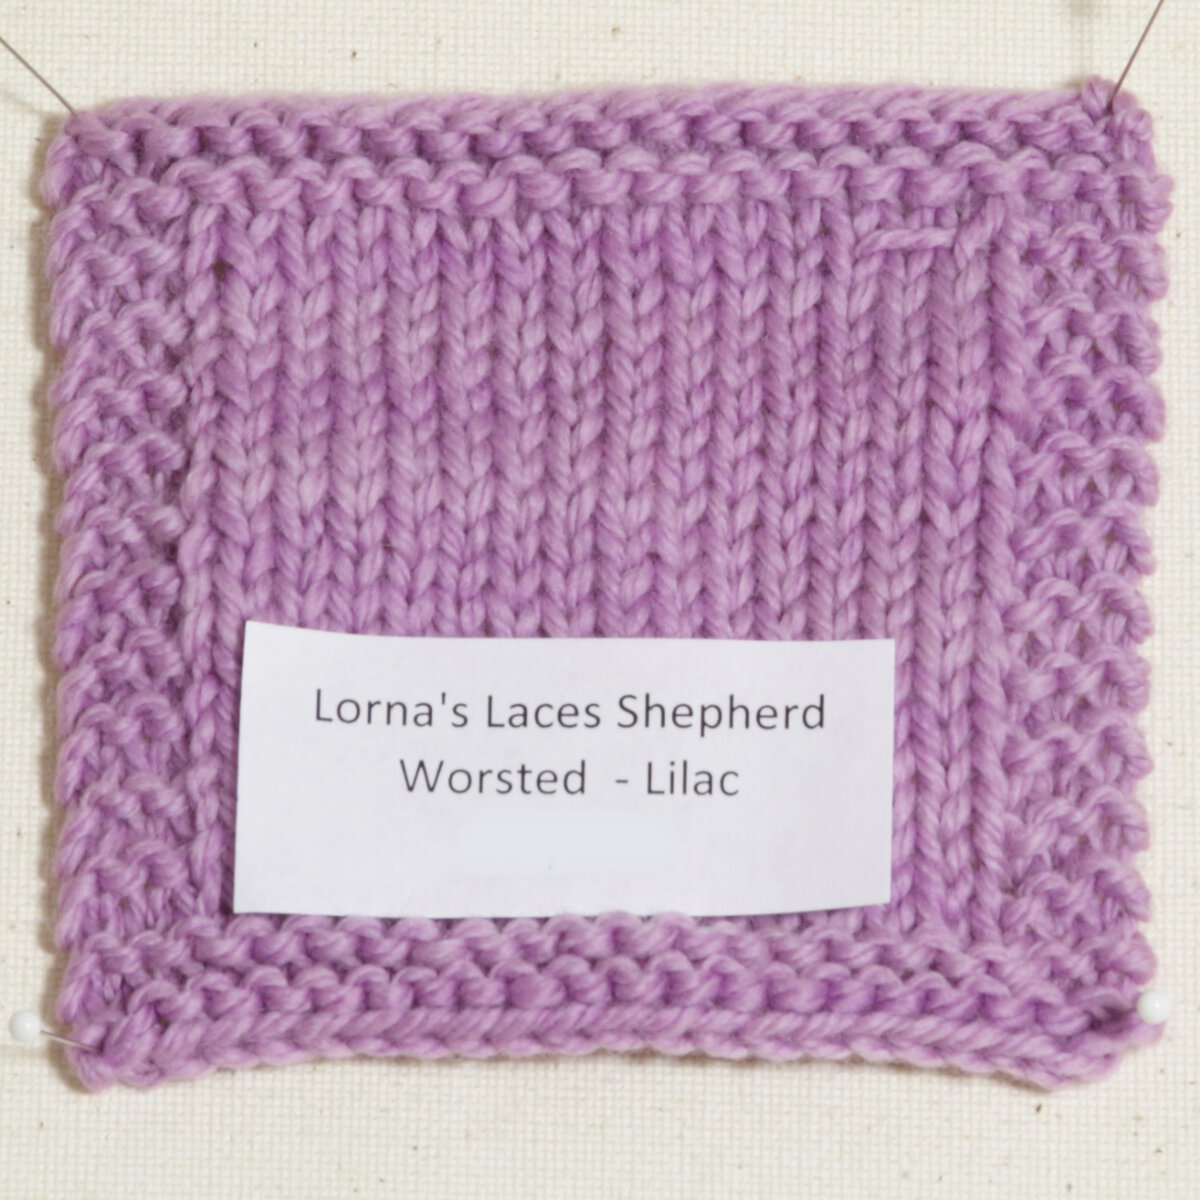 Lornas Laces Shepherd Worsted Yarn - Lilac Reviews at Jimmy Beans Wool